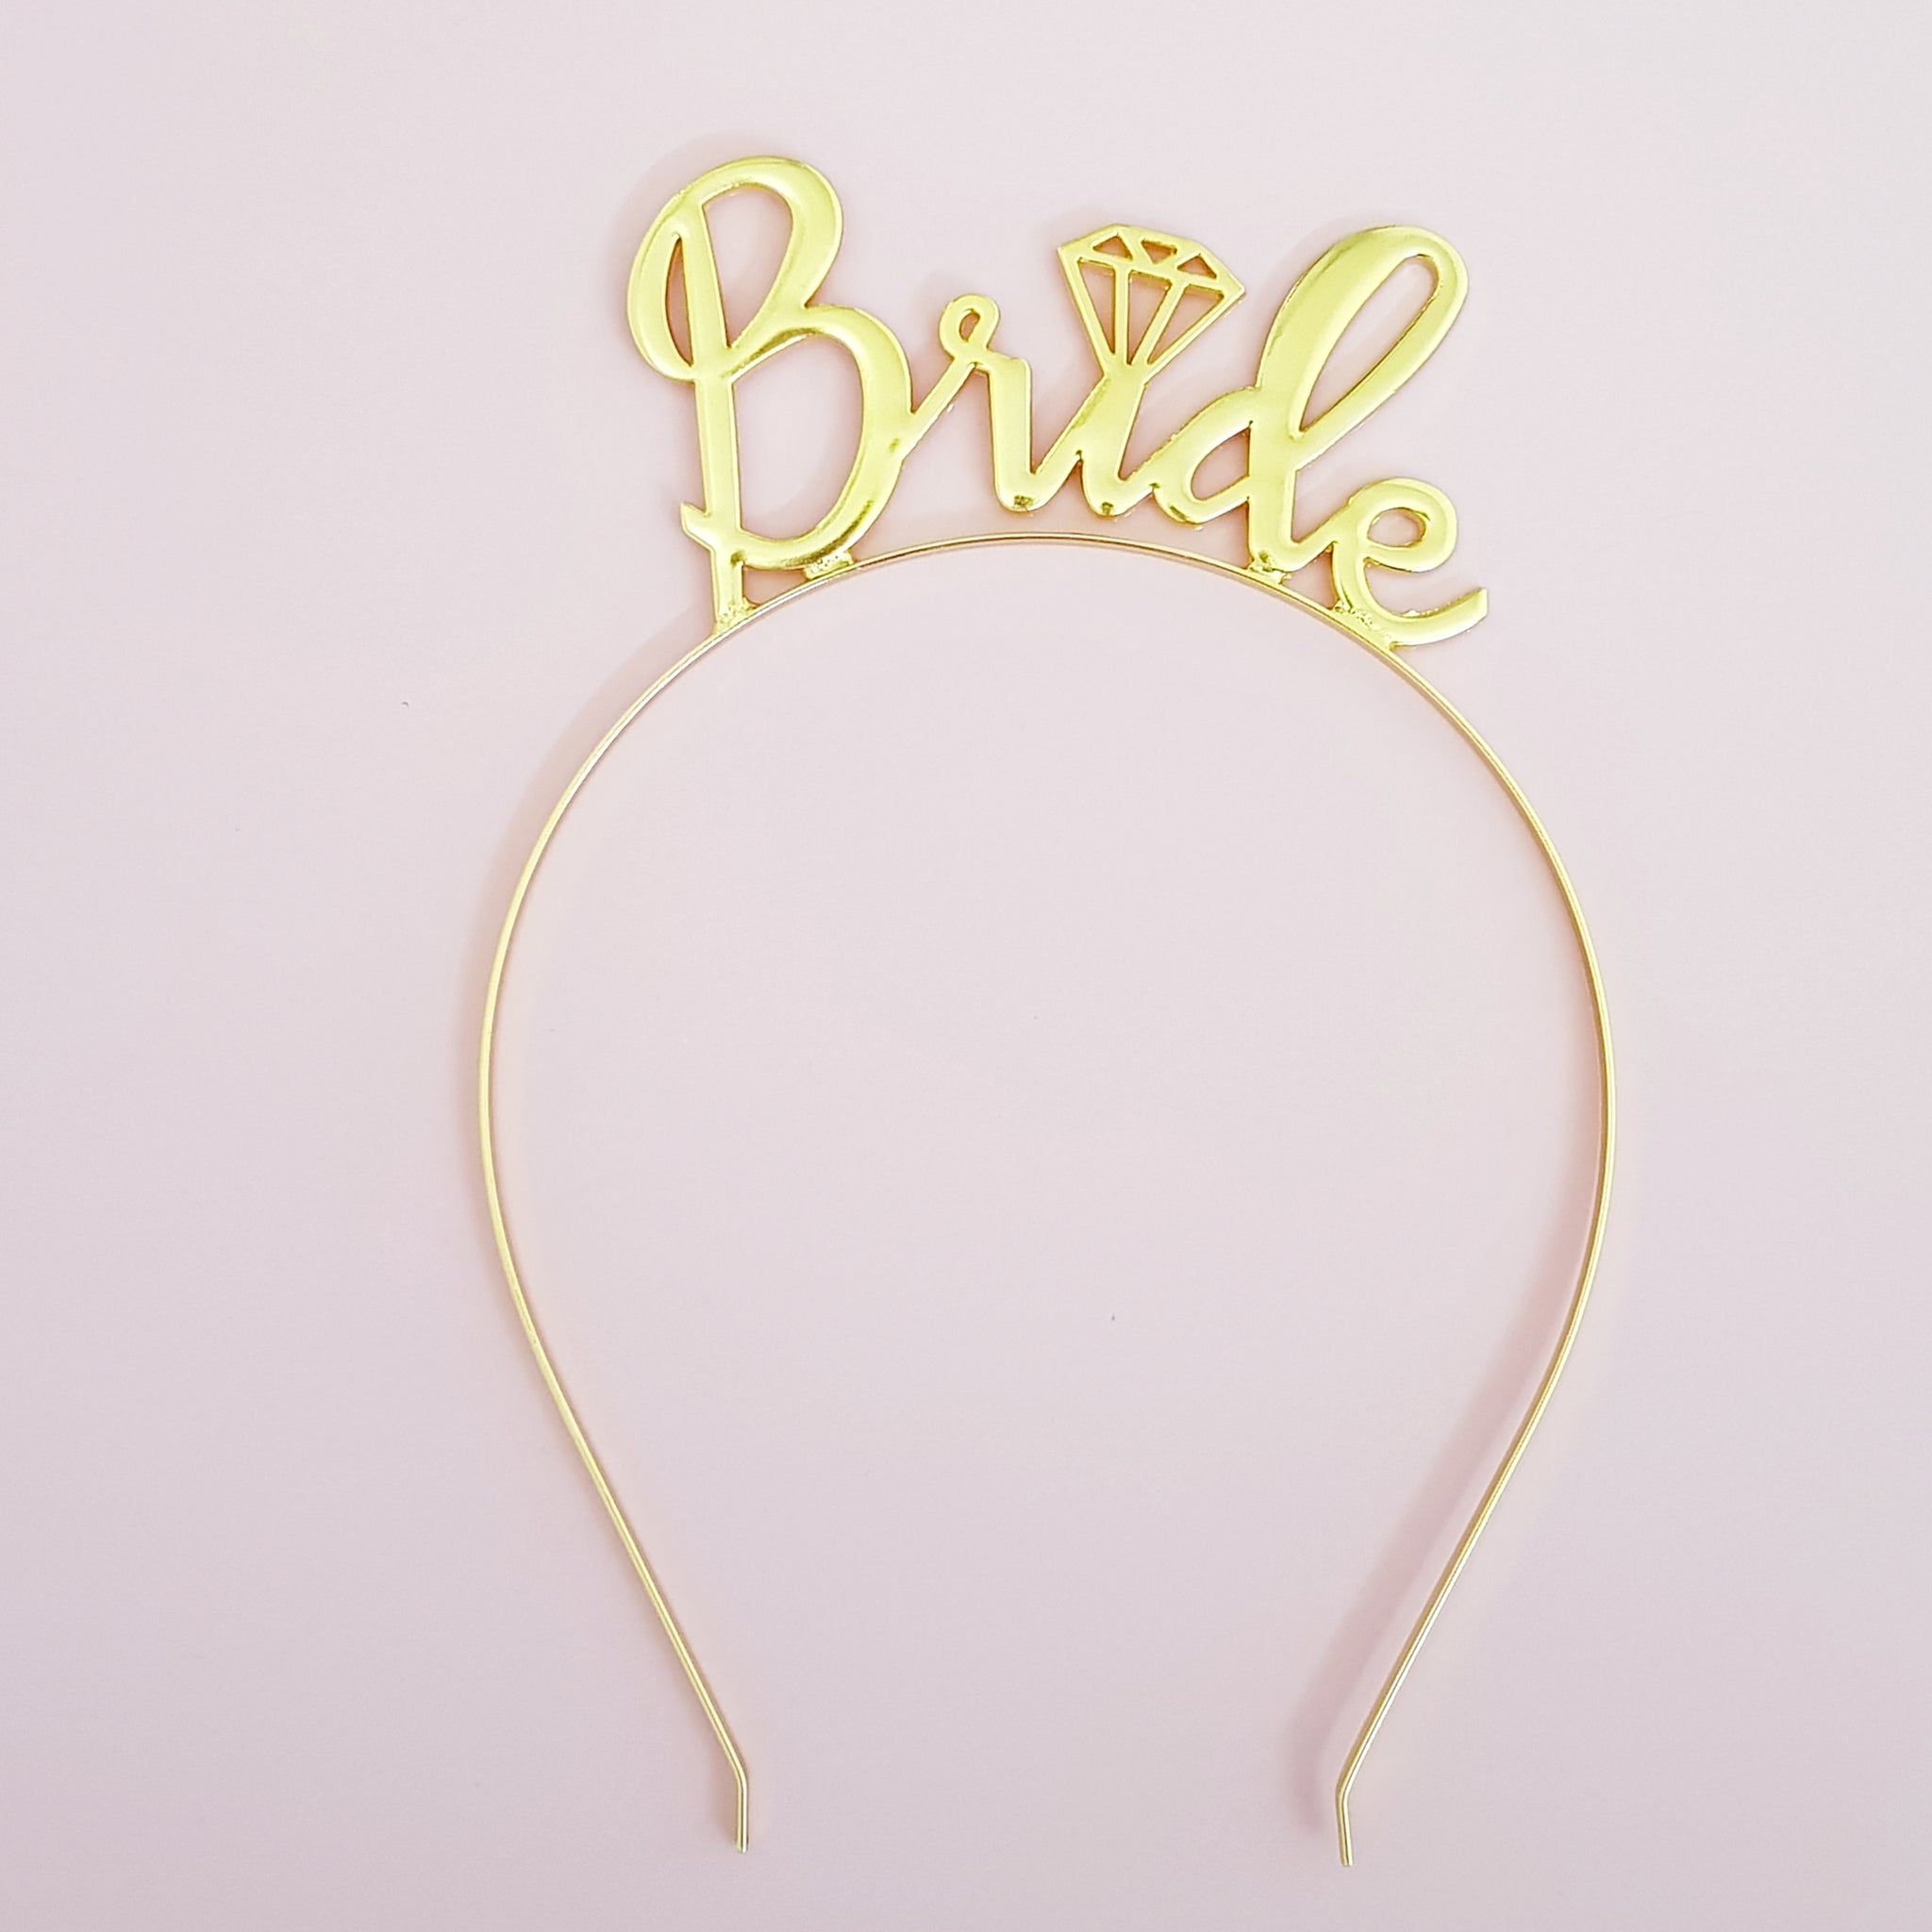 Bride hair band in Gold